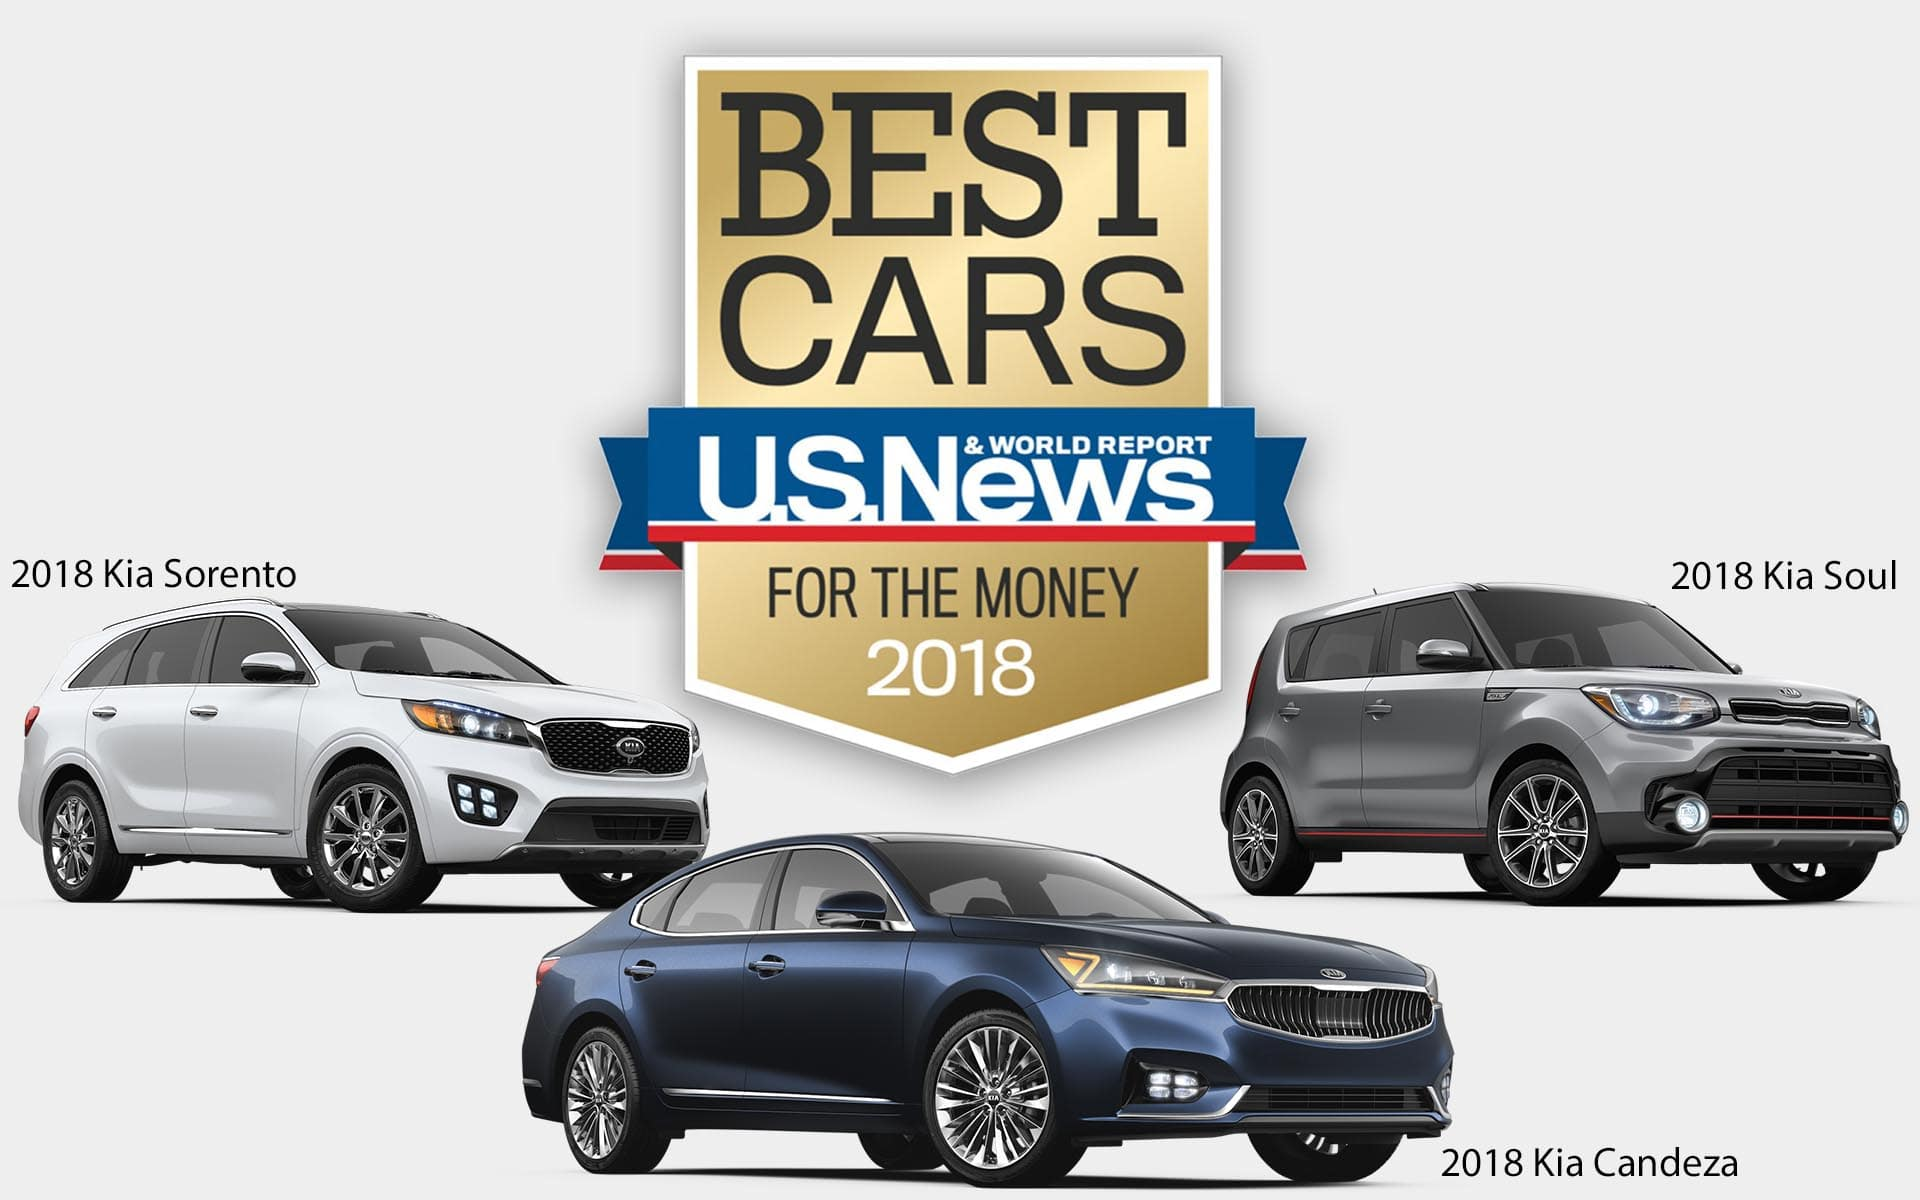 Kia U.S. News & World Report Best Cars for the Money winner